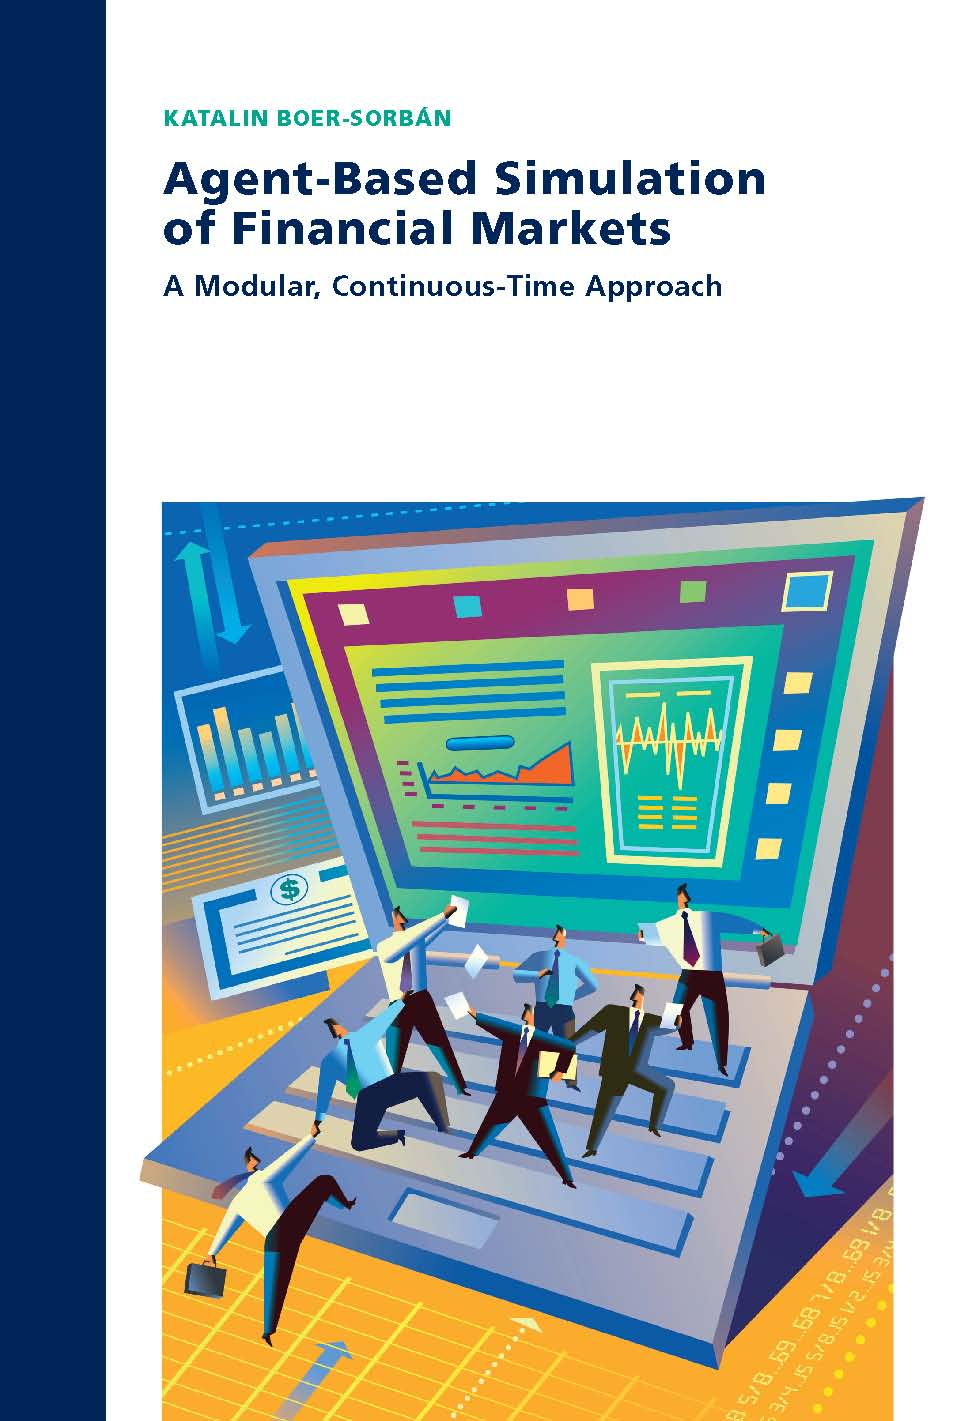 Agent-Based Simulation of Financial Markets: A Modular, Continuous-time Approach